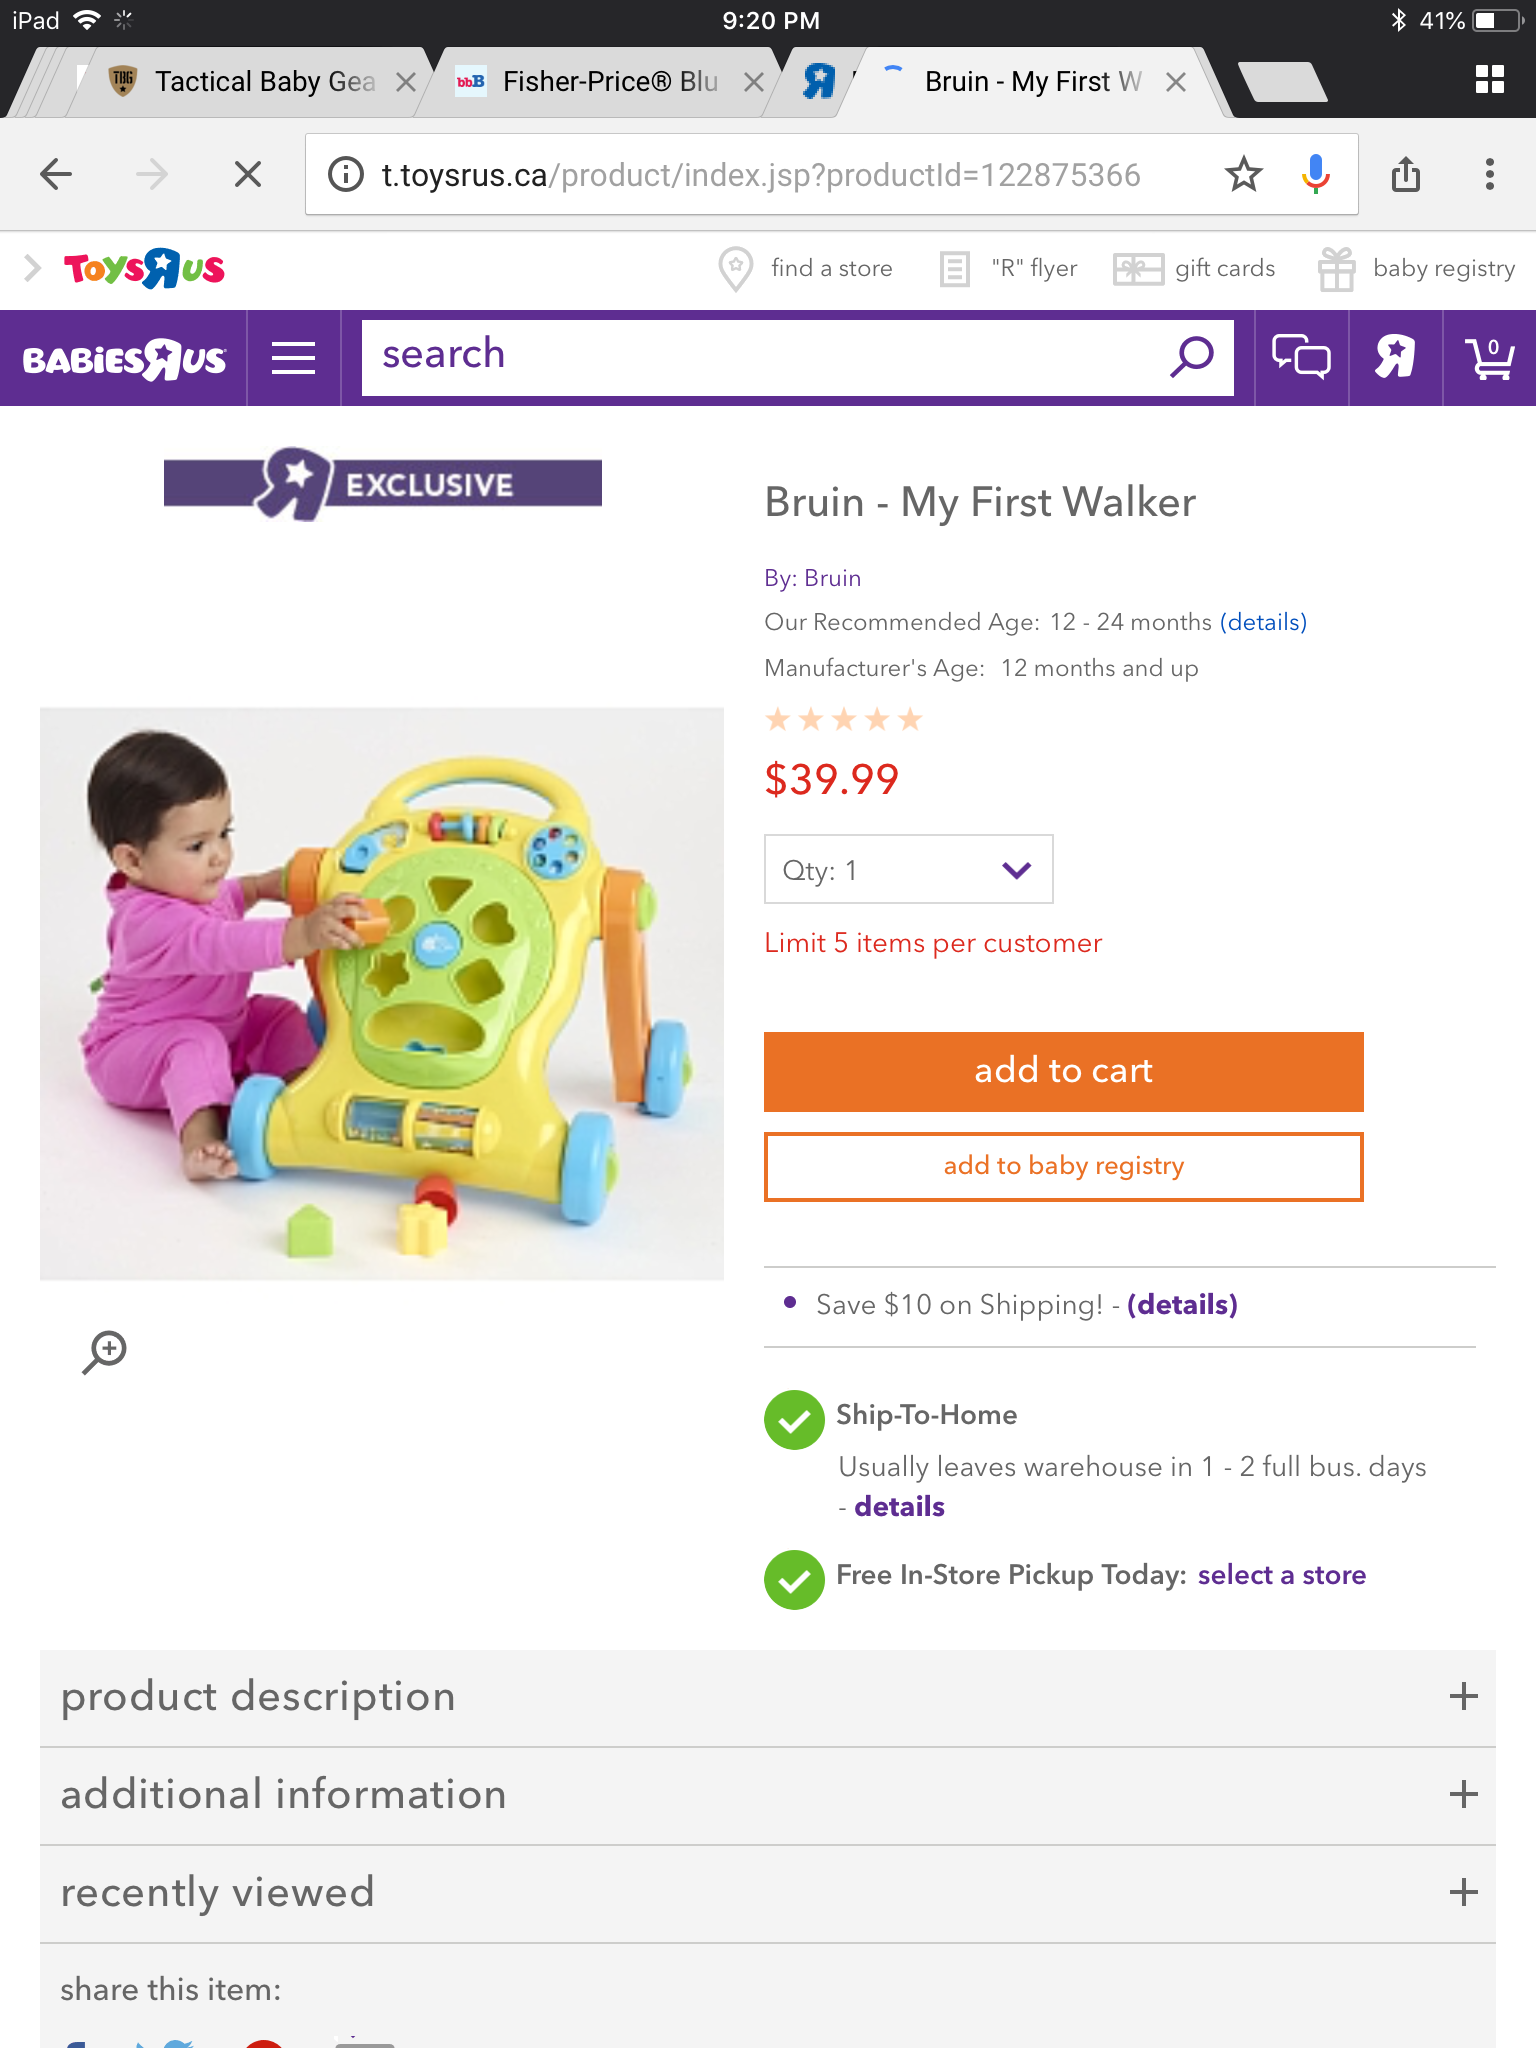 Pin by Jessi on Baby registry ideas Baby registry, First